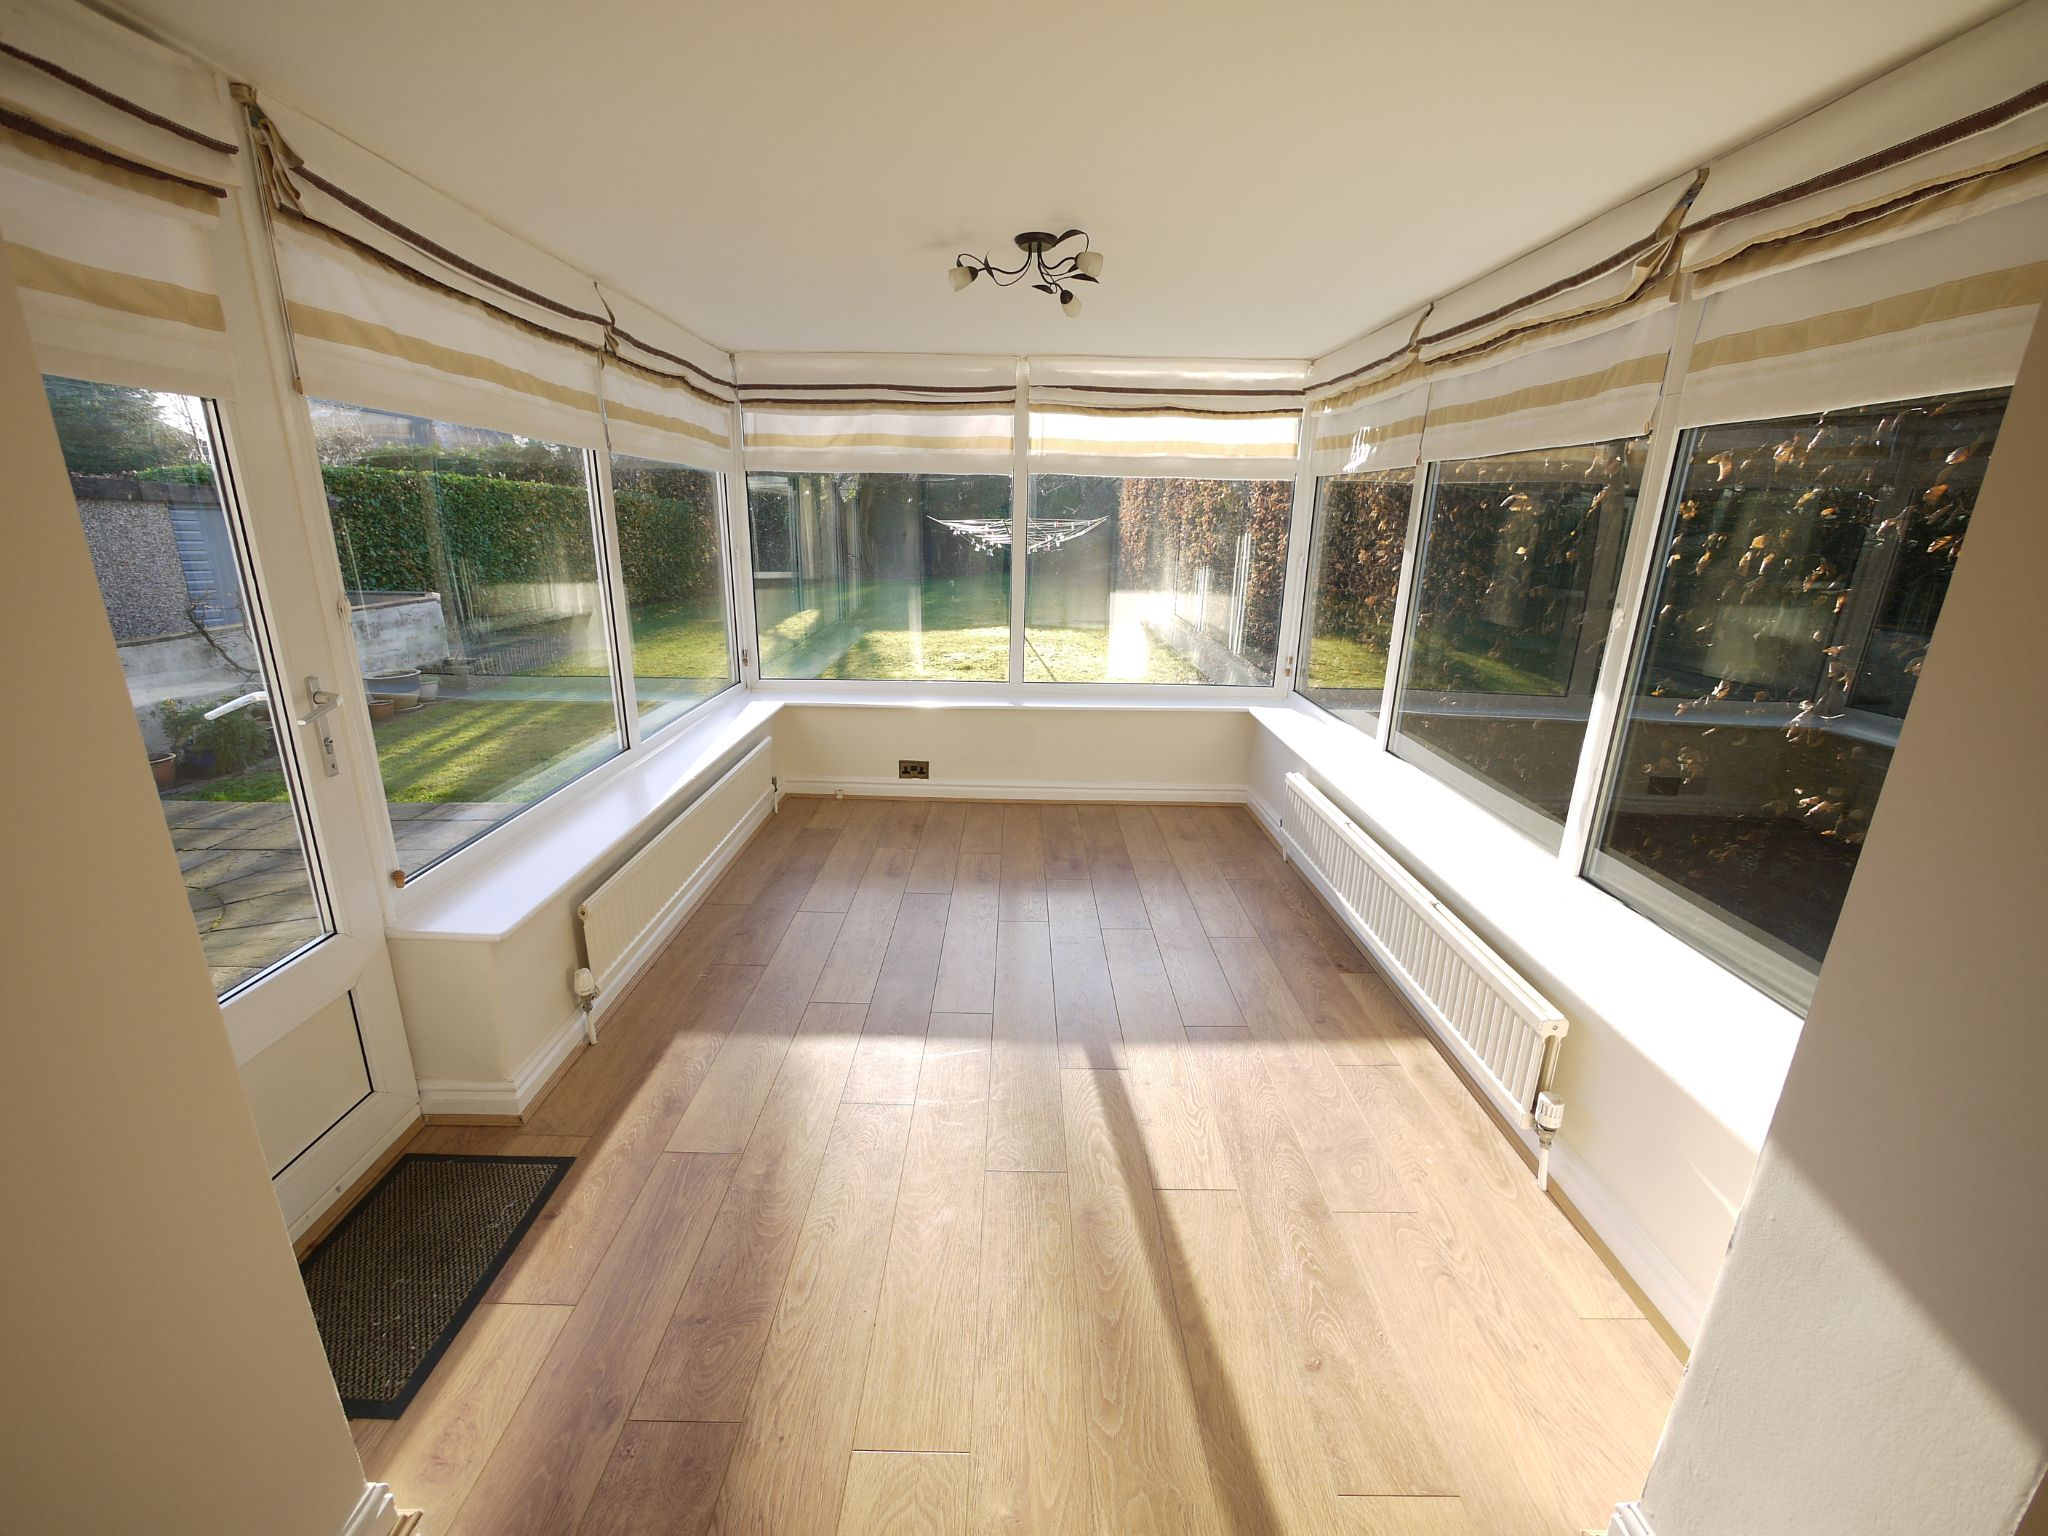 5 bedroom detached bungalow For Sale in Brighouse - dining/garden room 2.